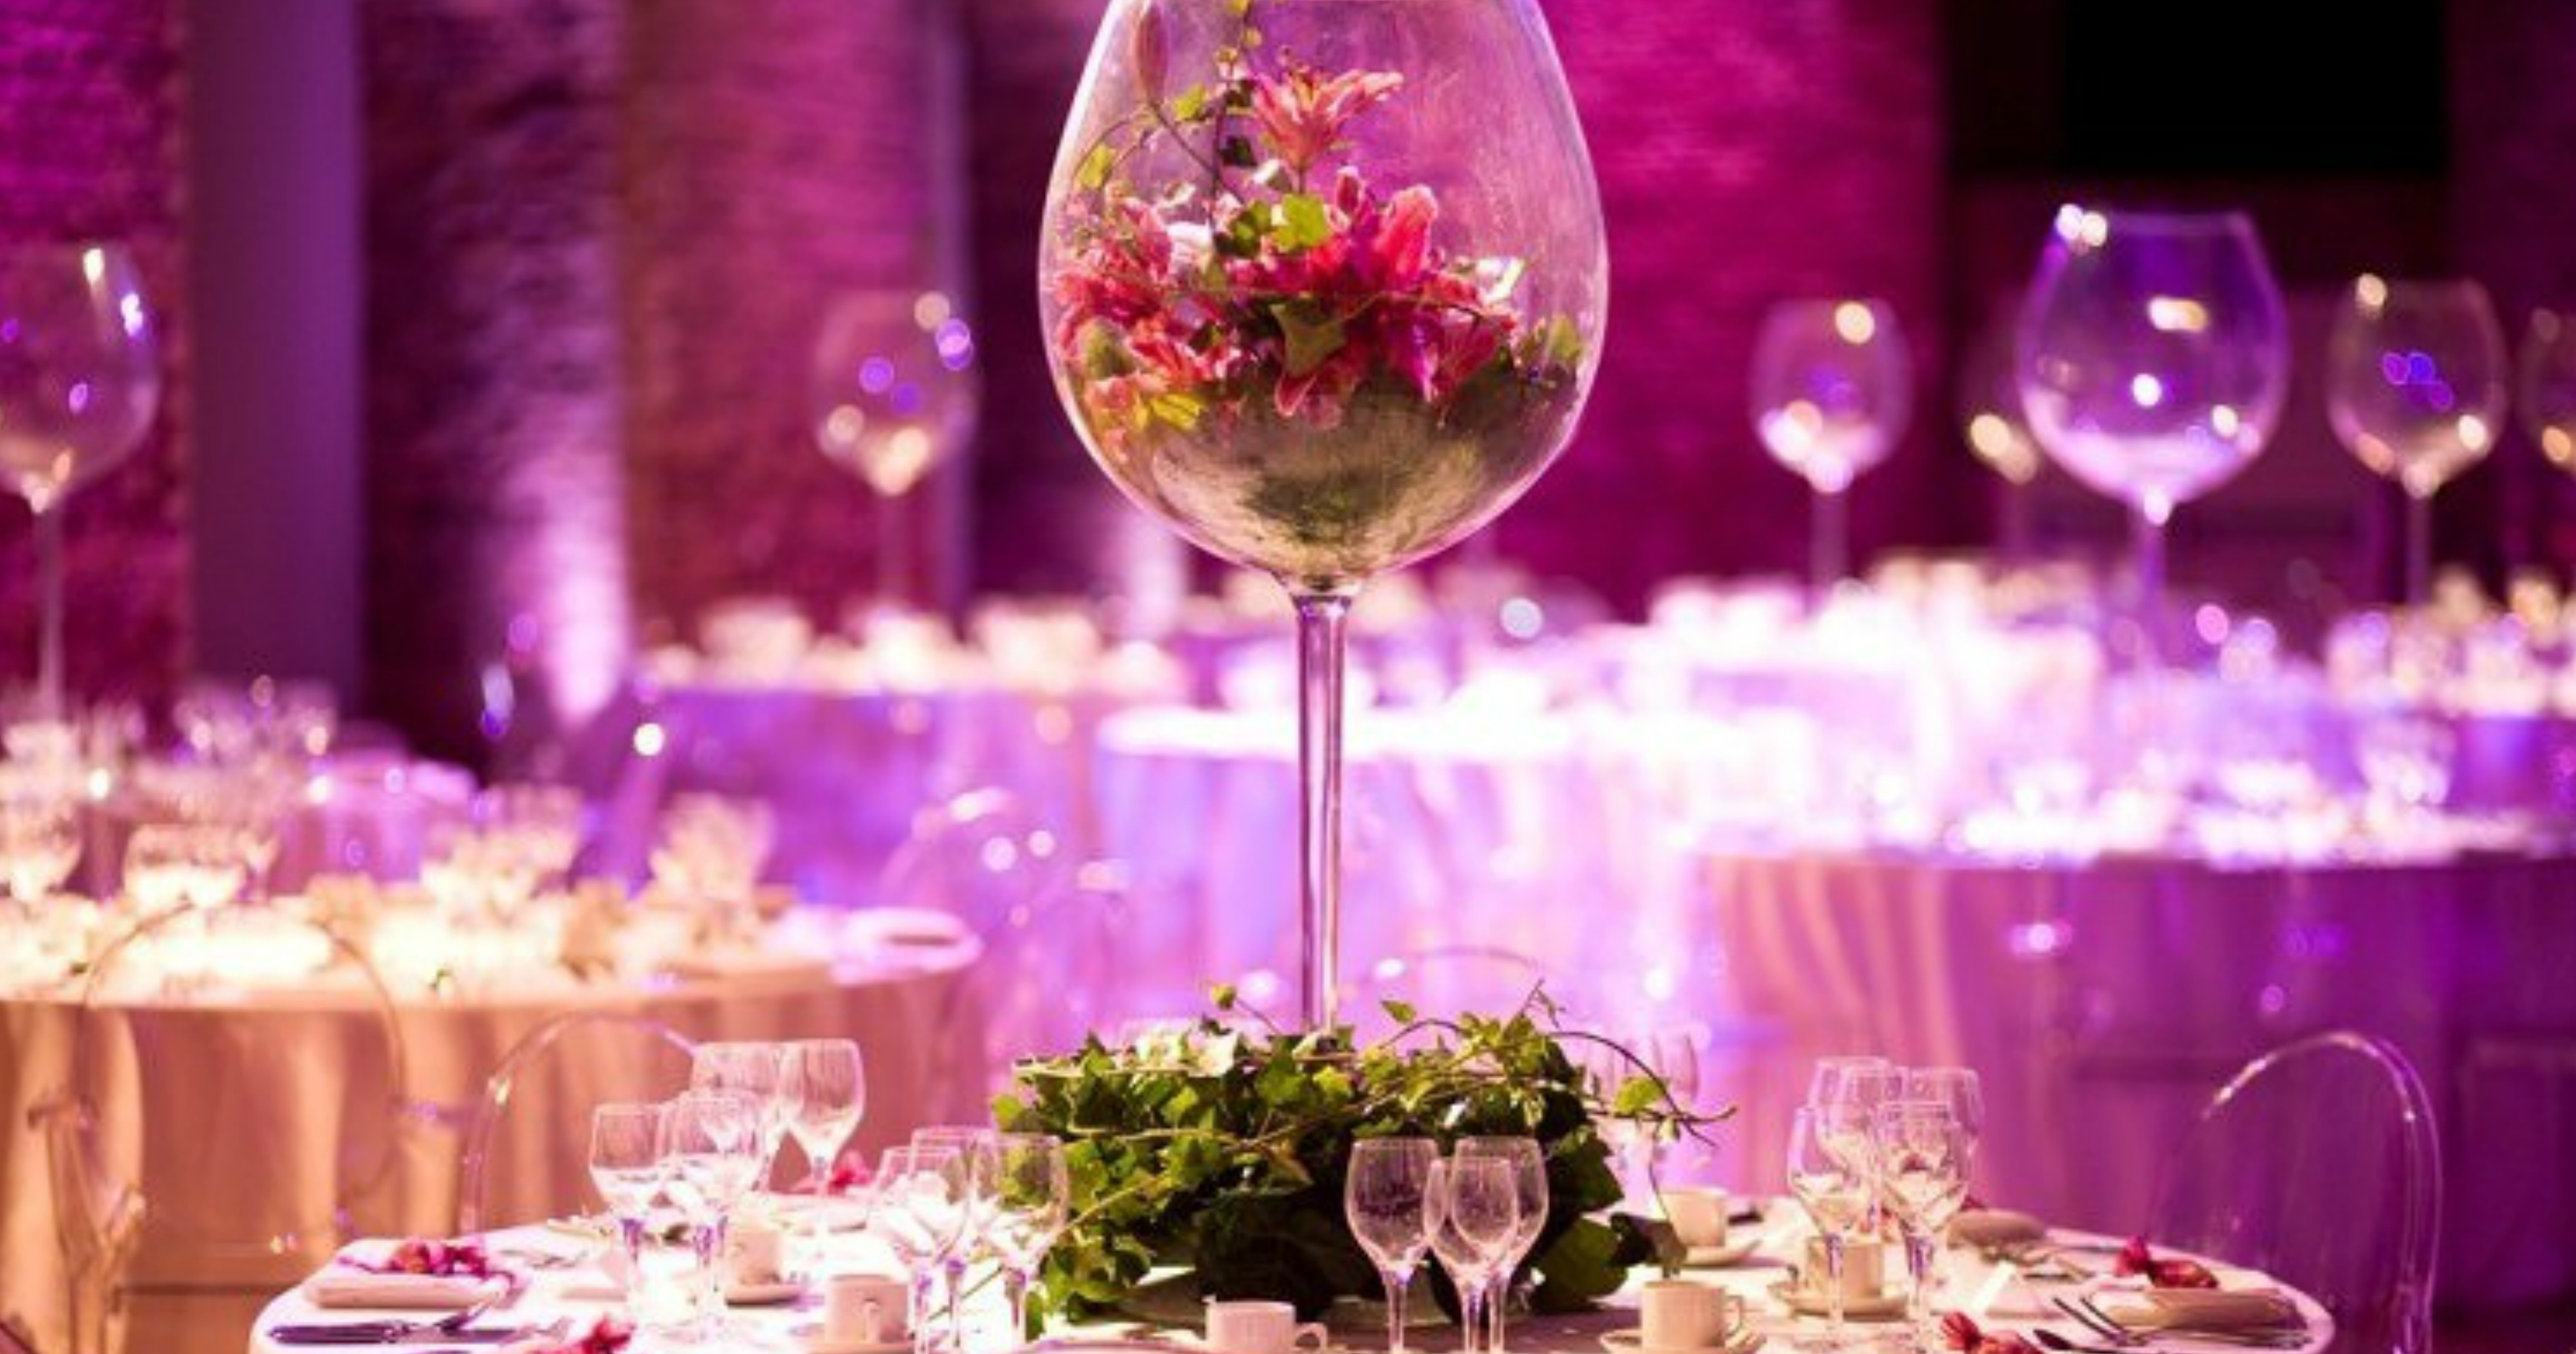 10+ Stunning Reception Centerpiece Ideas That You Can Steal For Your ...